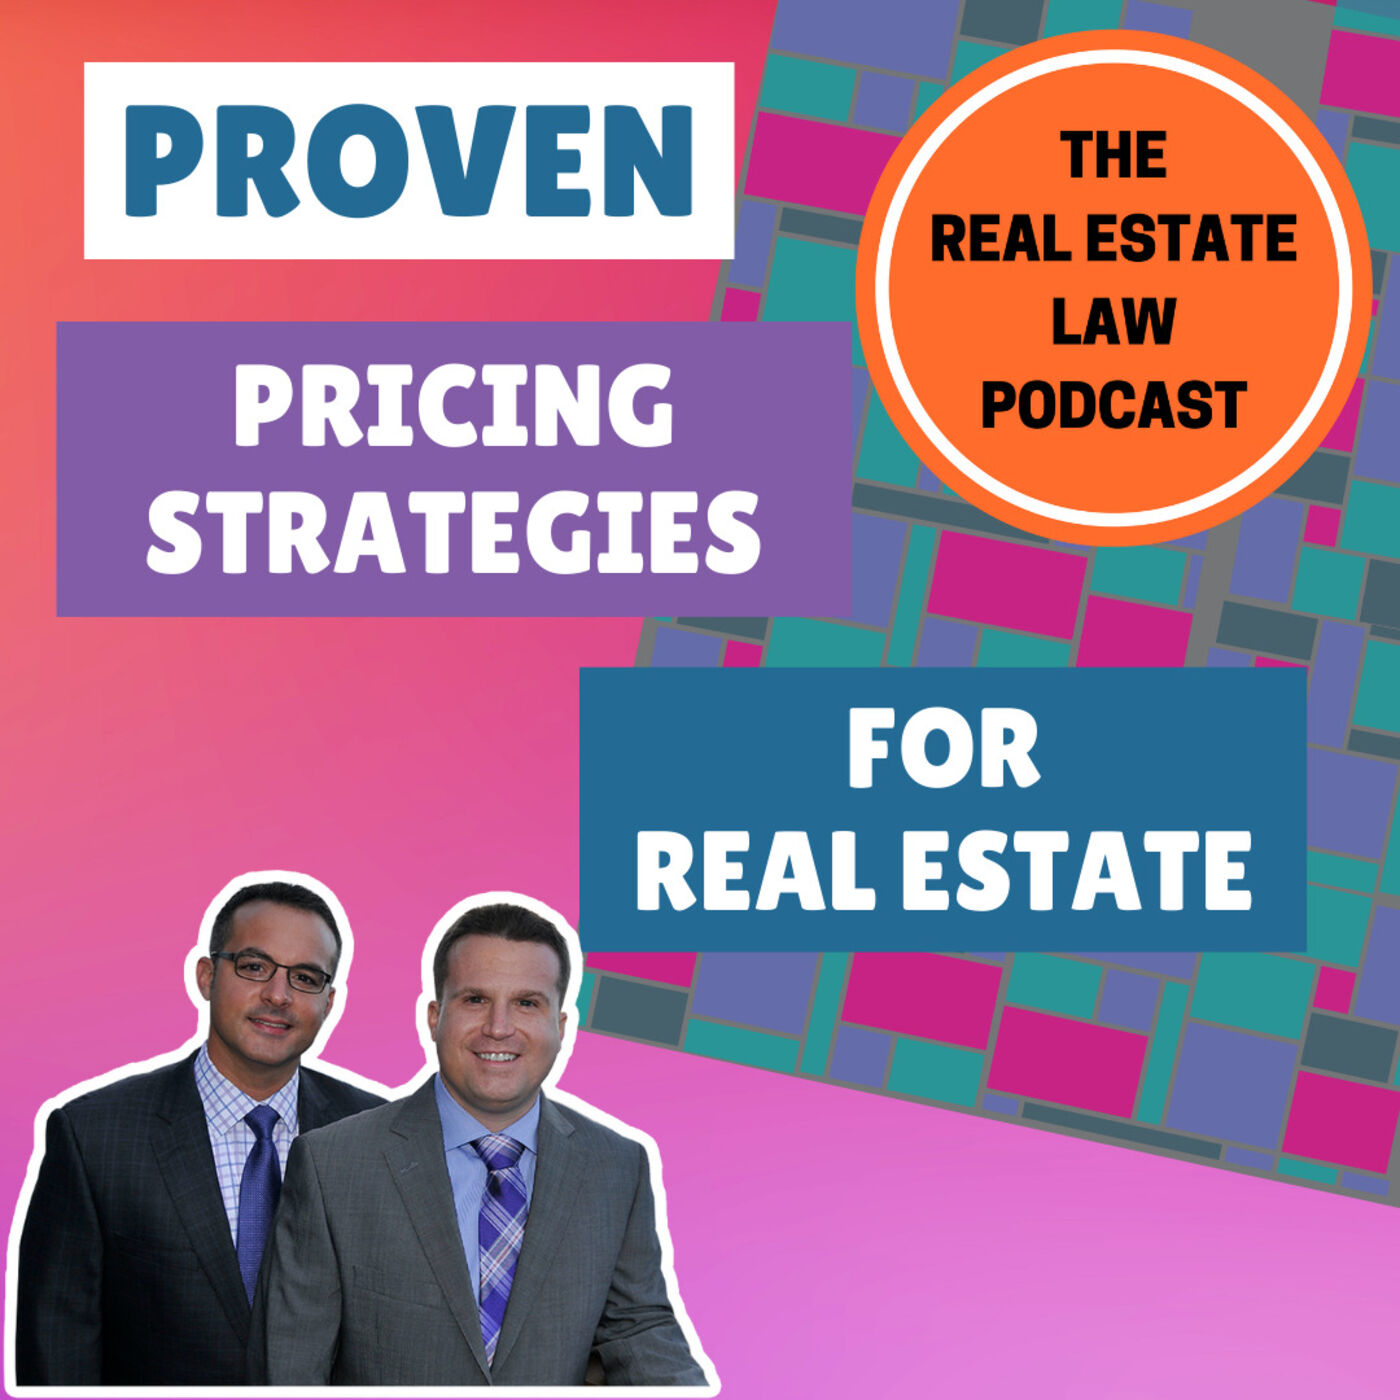 10 - Proven Pricing Strategy for Selling Real Estate